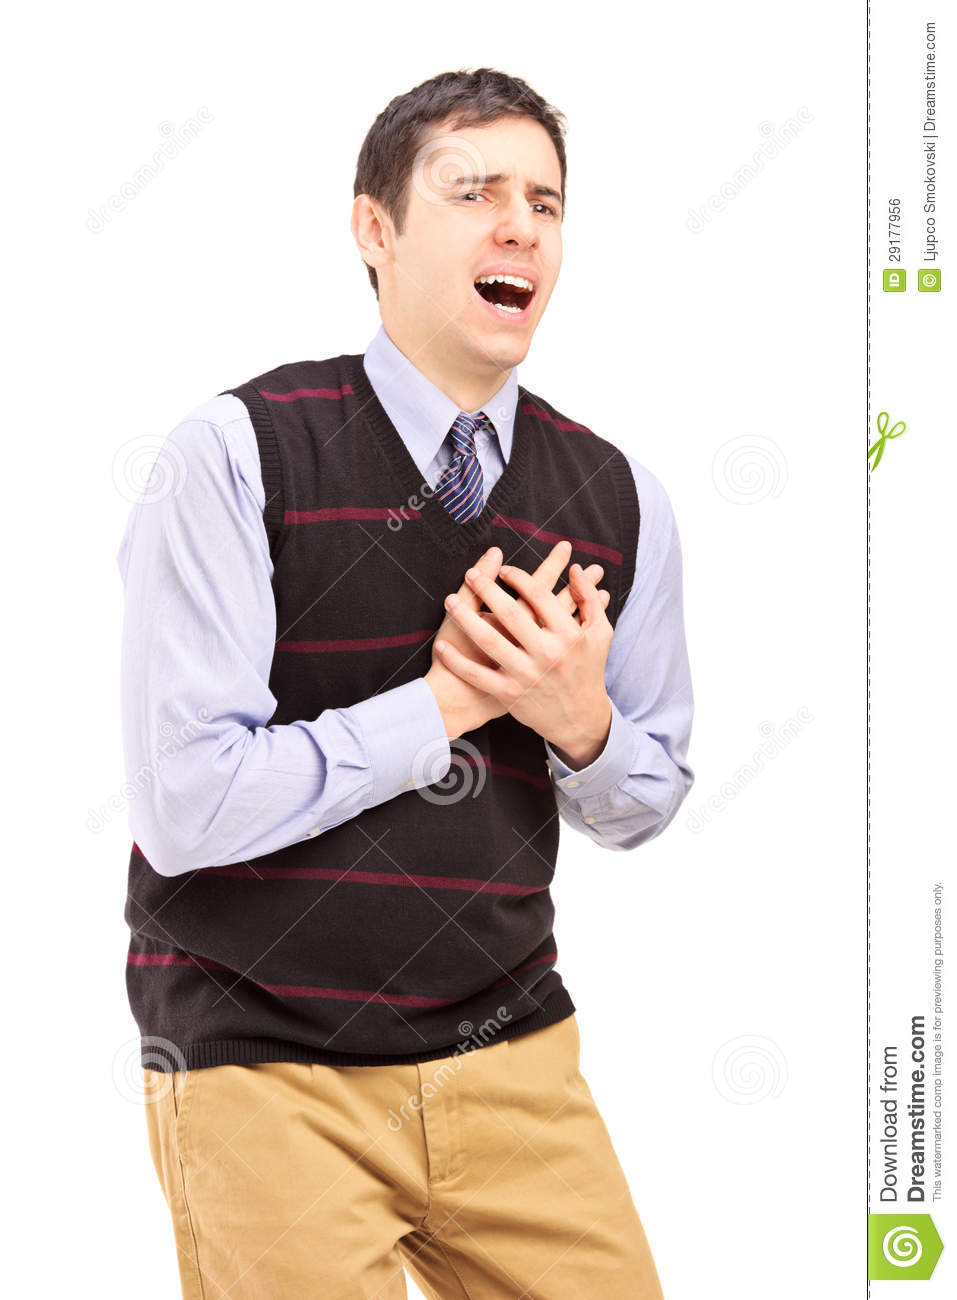 Young Man Having A Heart Attack Royalty Free Stock Image - Image ...